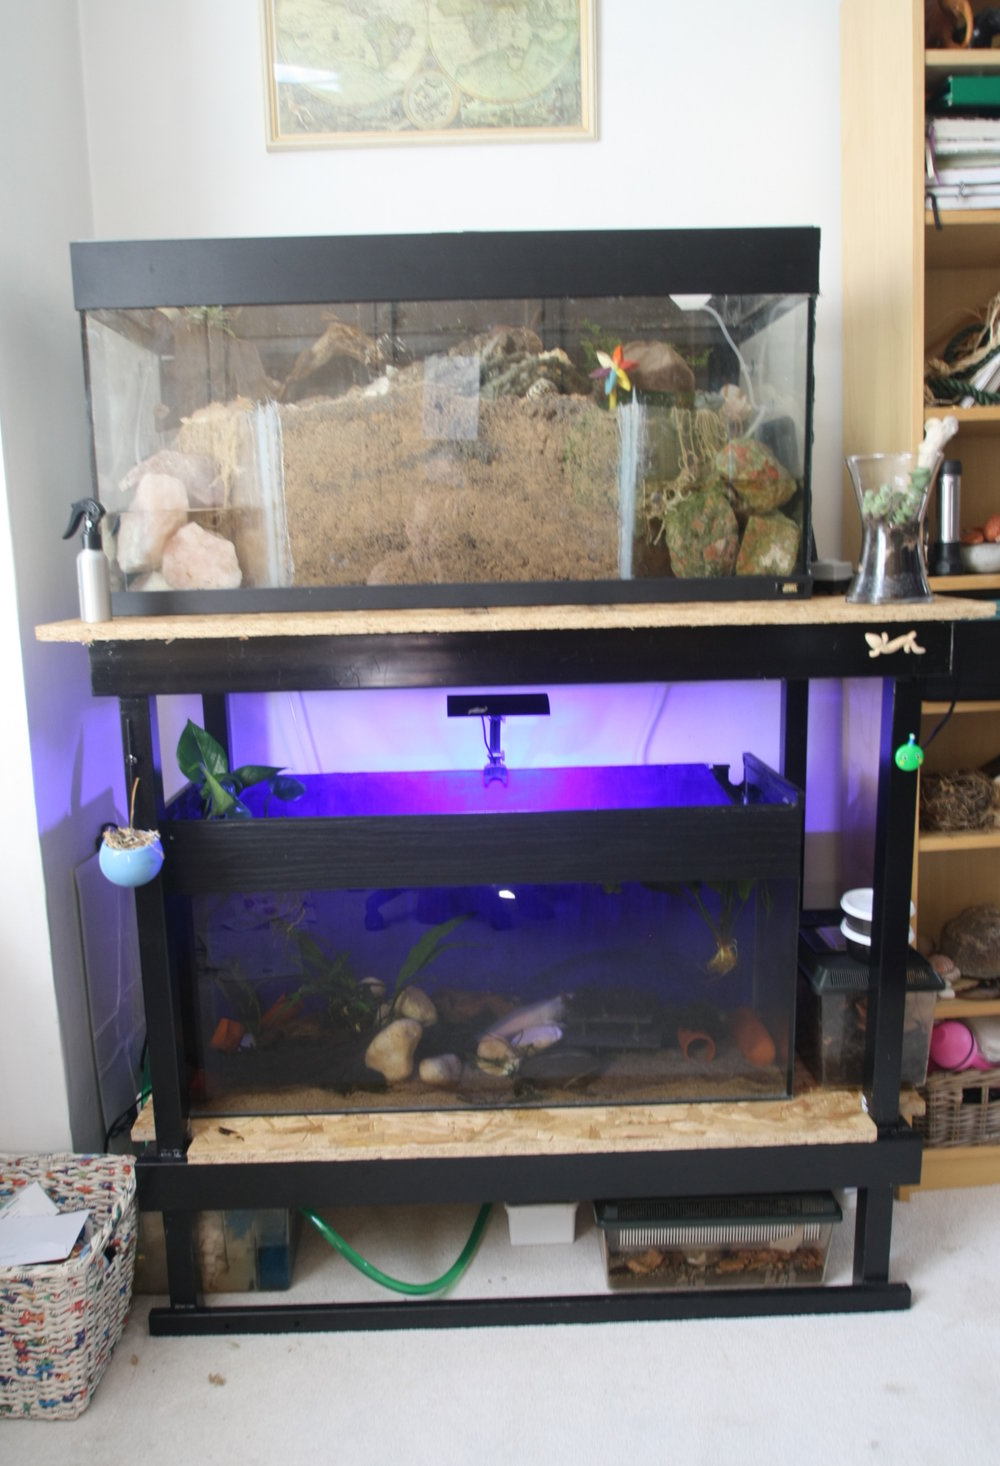 Aquarium Shelves